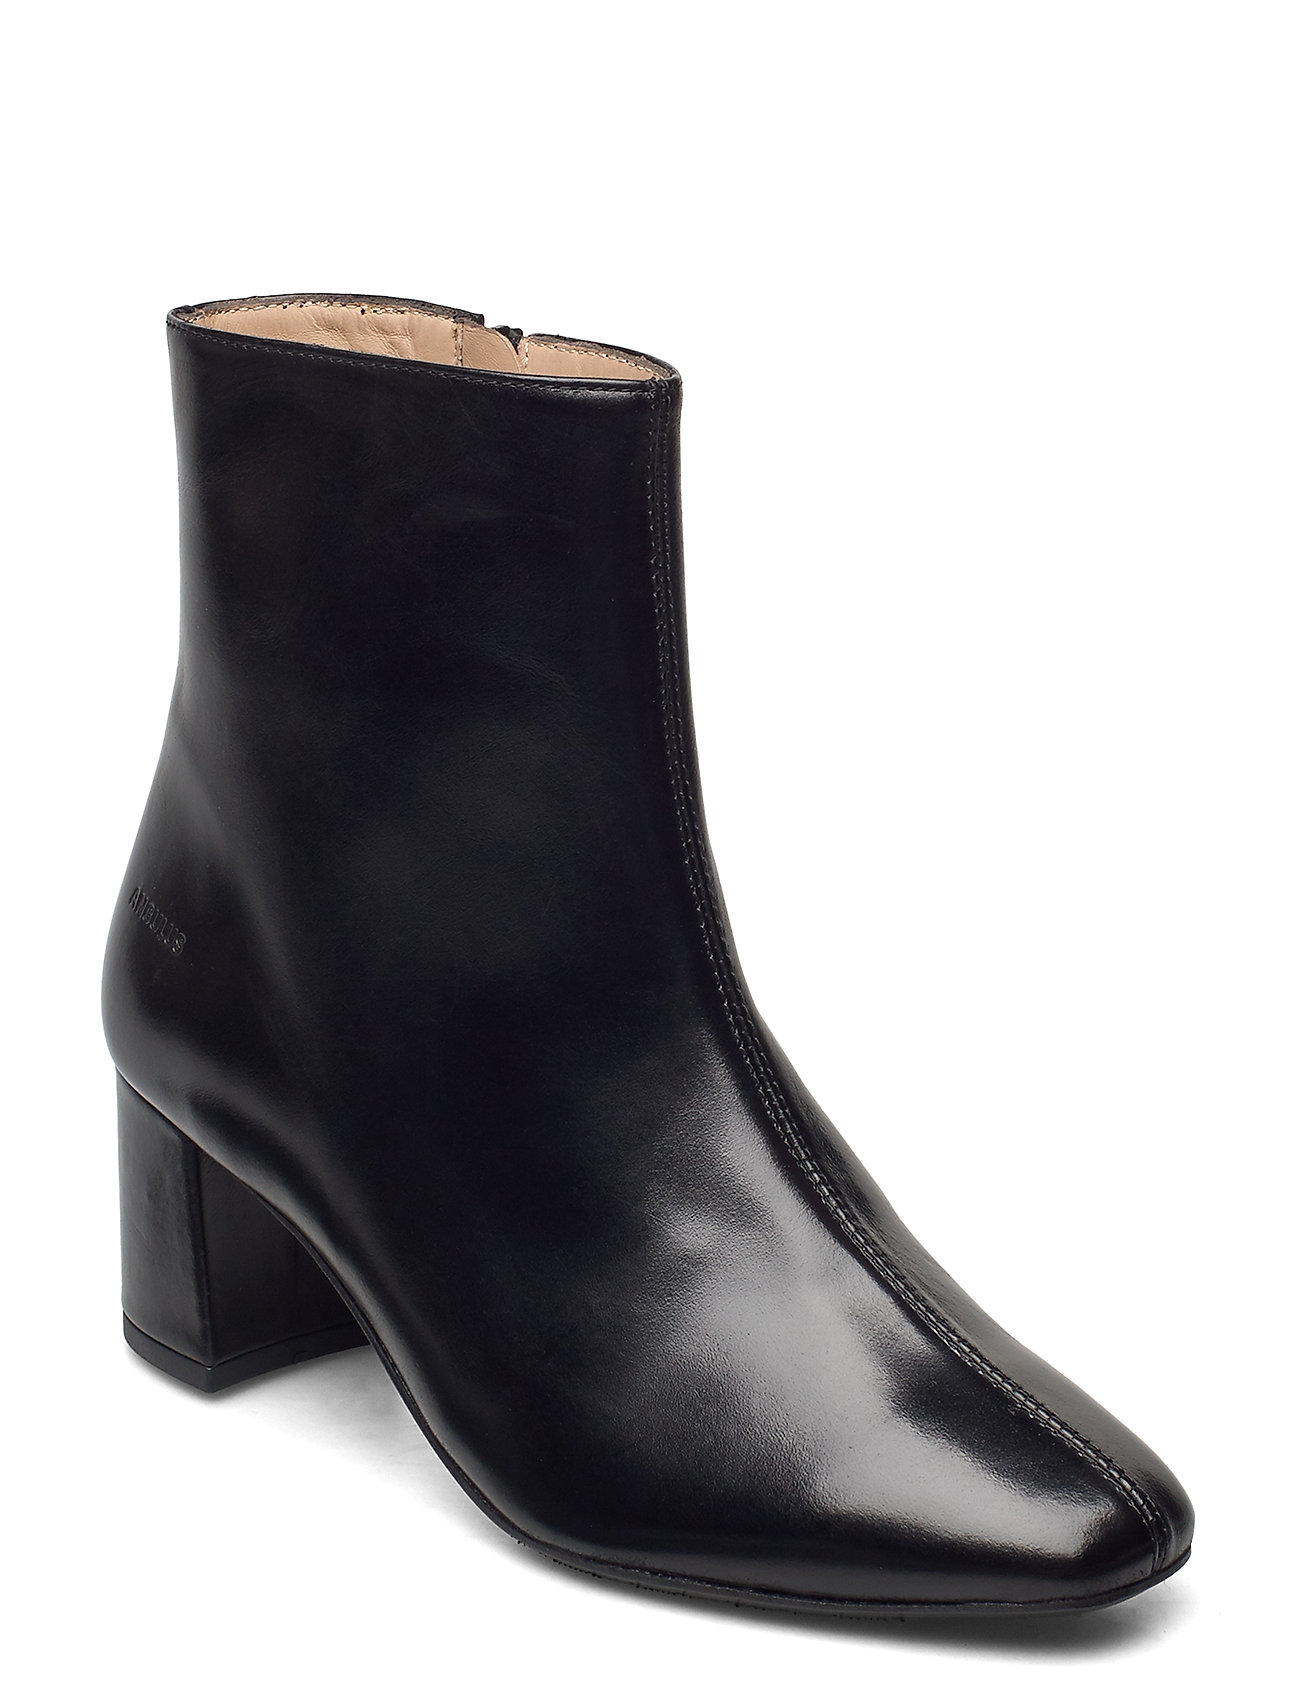 Image of Bootie - Block Heel - With Zippe Shoes Boots Ankle Boots Ankle Boot - Heel Sort ANGULUS (3445585161)